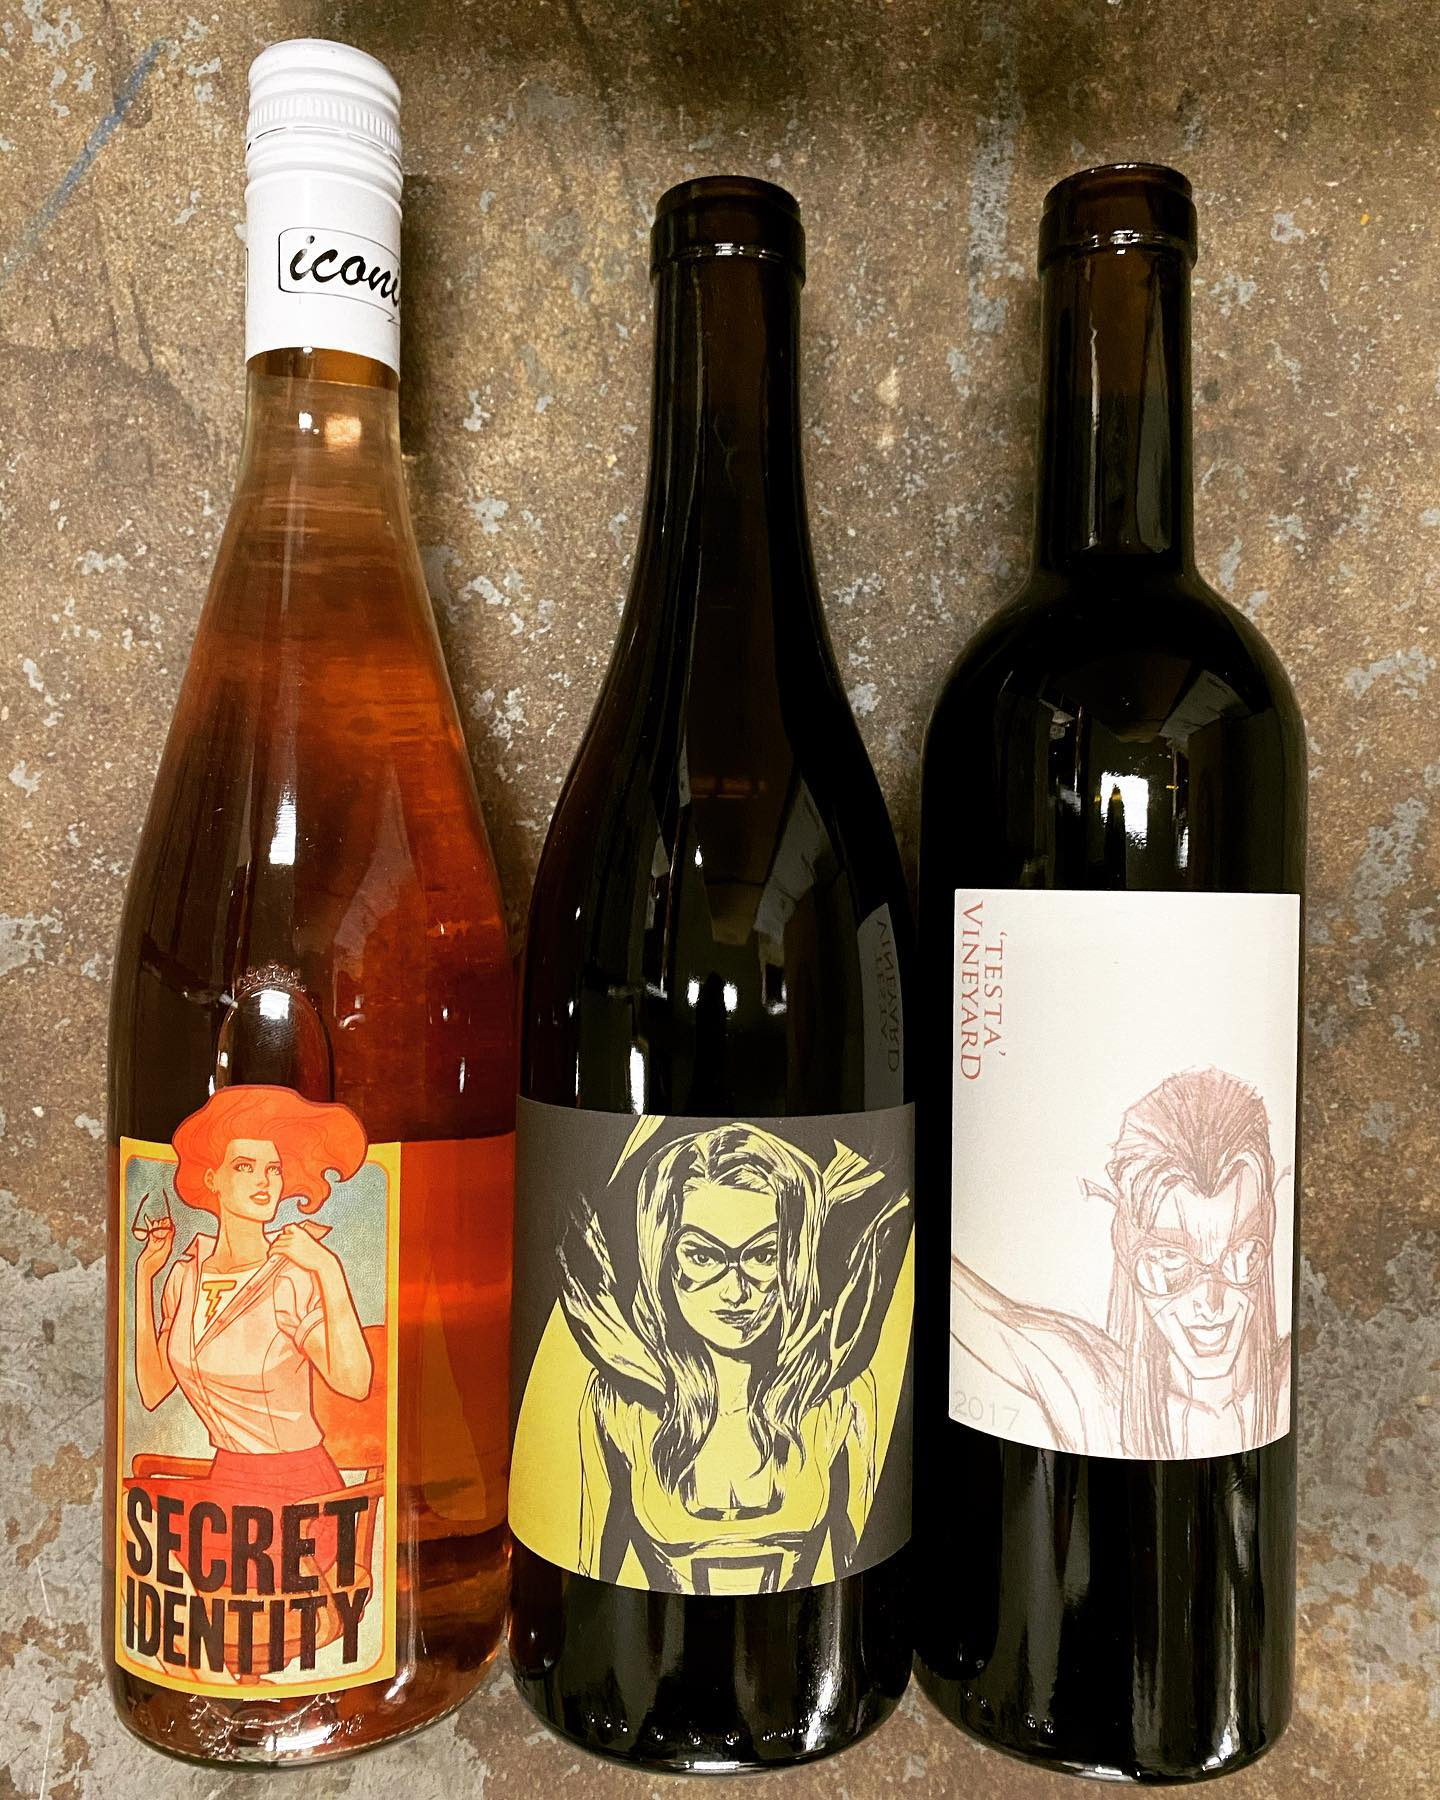 @iconicwine now available at Perkins! Heroine Chardonnay, Secret Identity Rose, and Testa Red Blend all